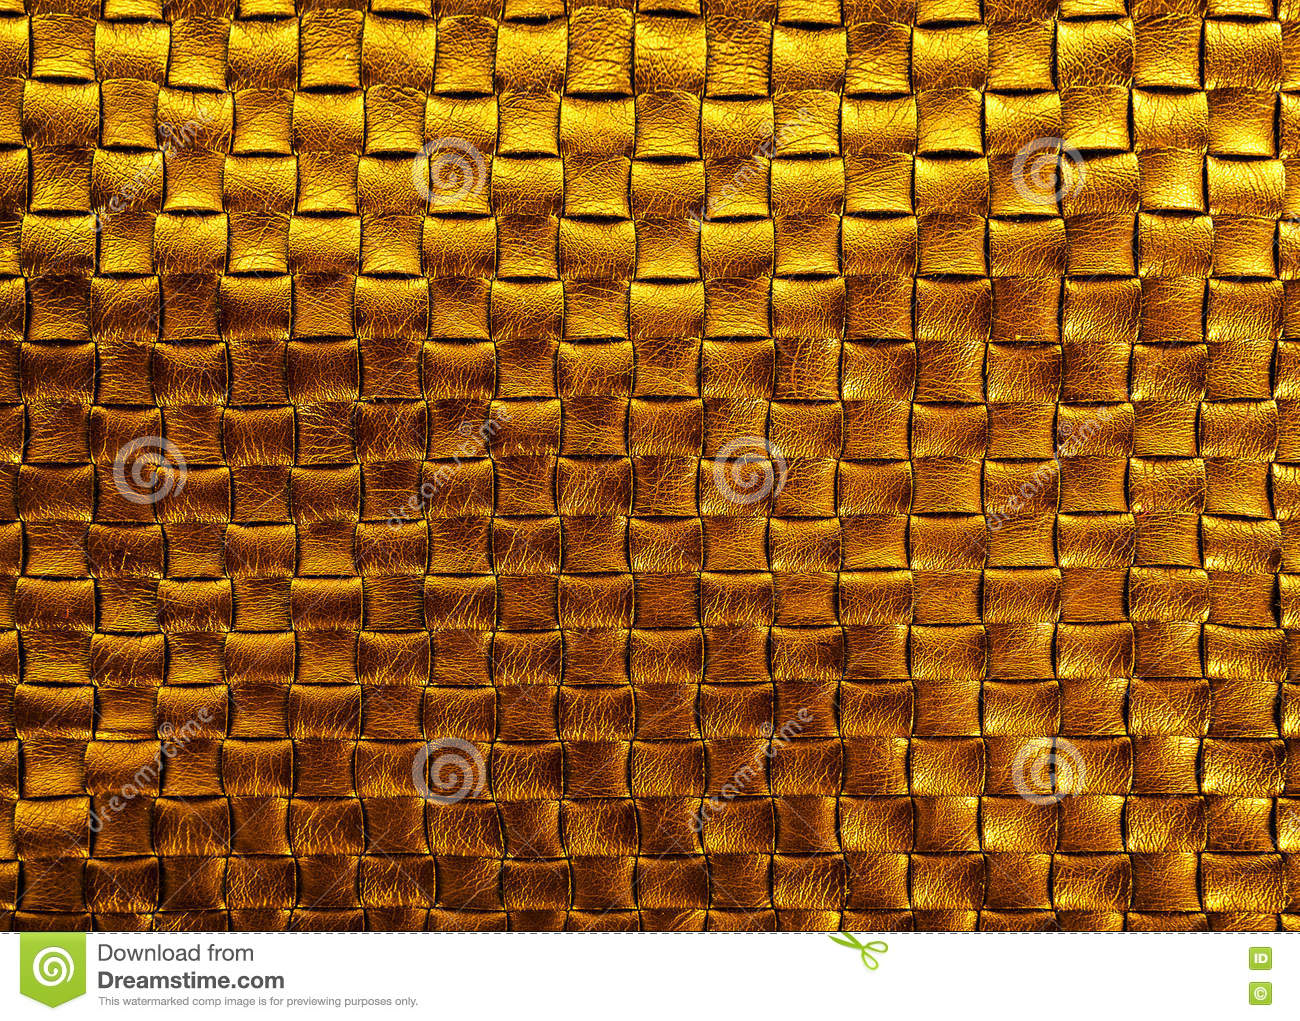 Gold bronze braided leather texture background